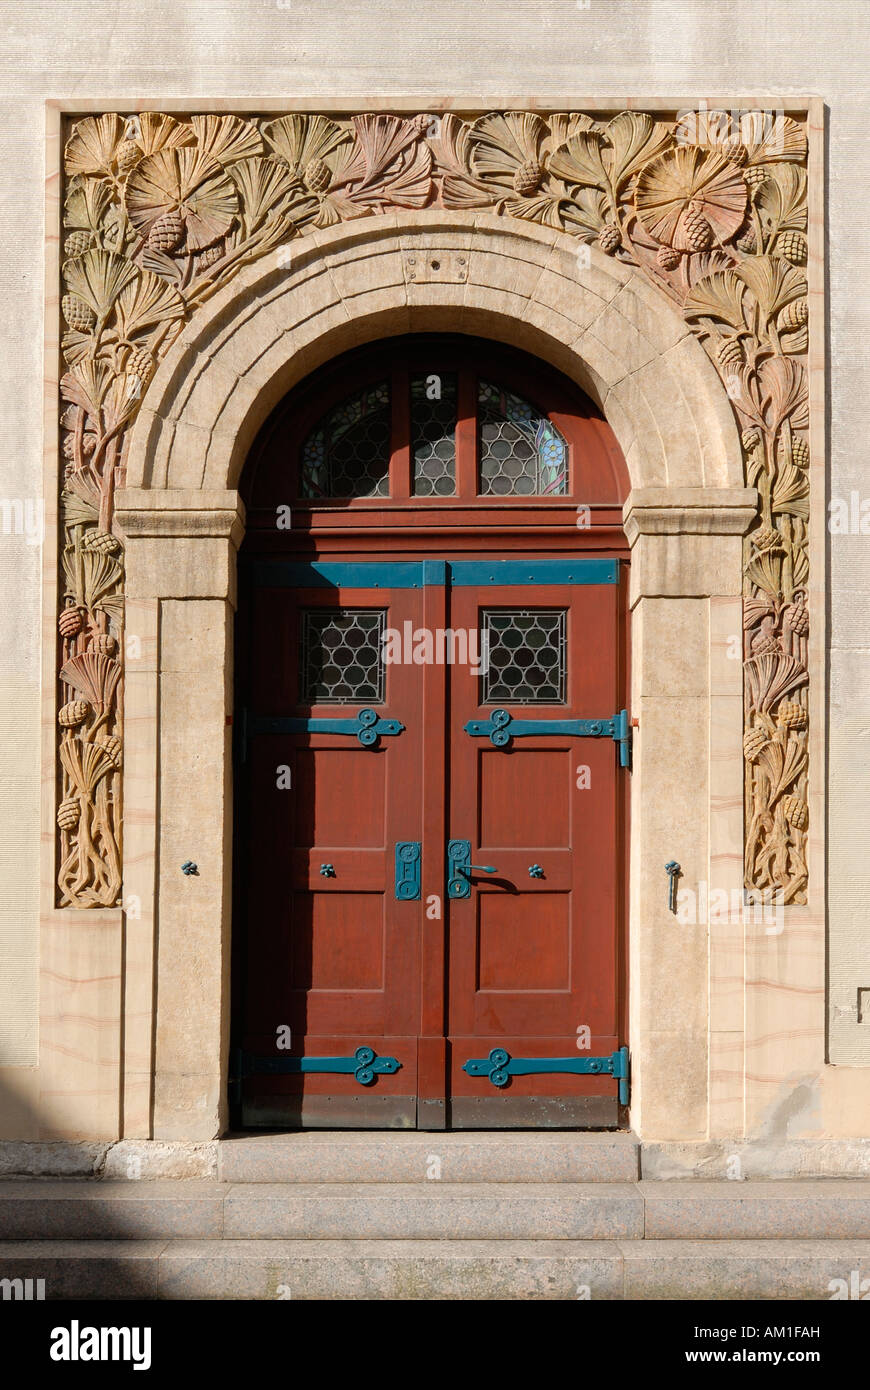 Tuttlingen - door with ornamentals from the church saint peter and paul - Baden Wuerttemberg, Germany, Europe. - Stock Image